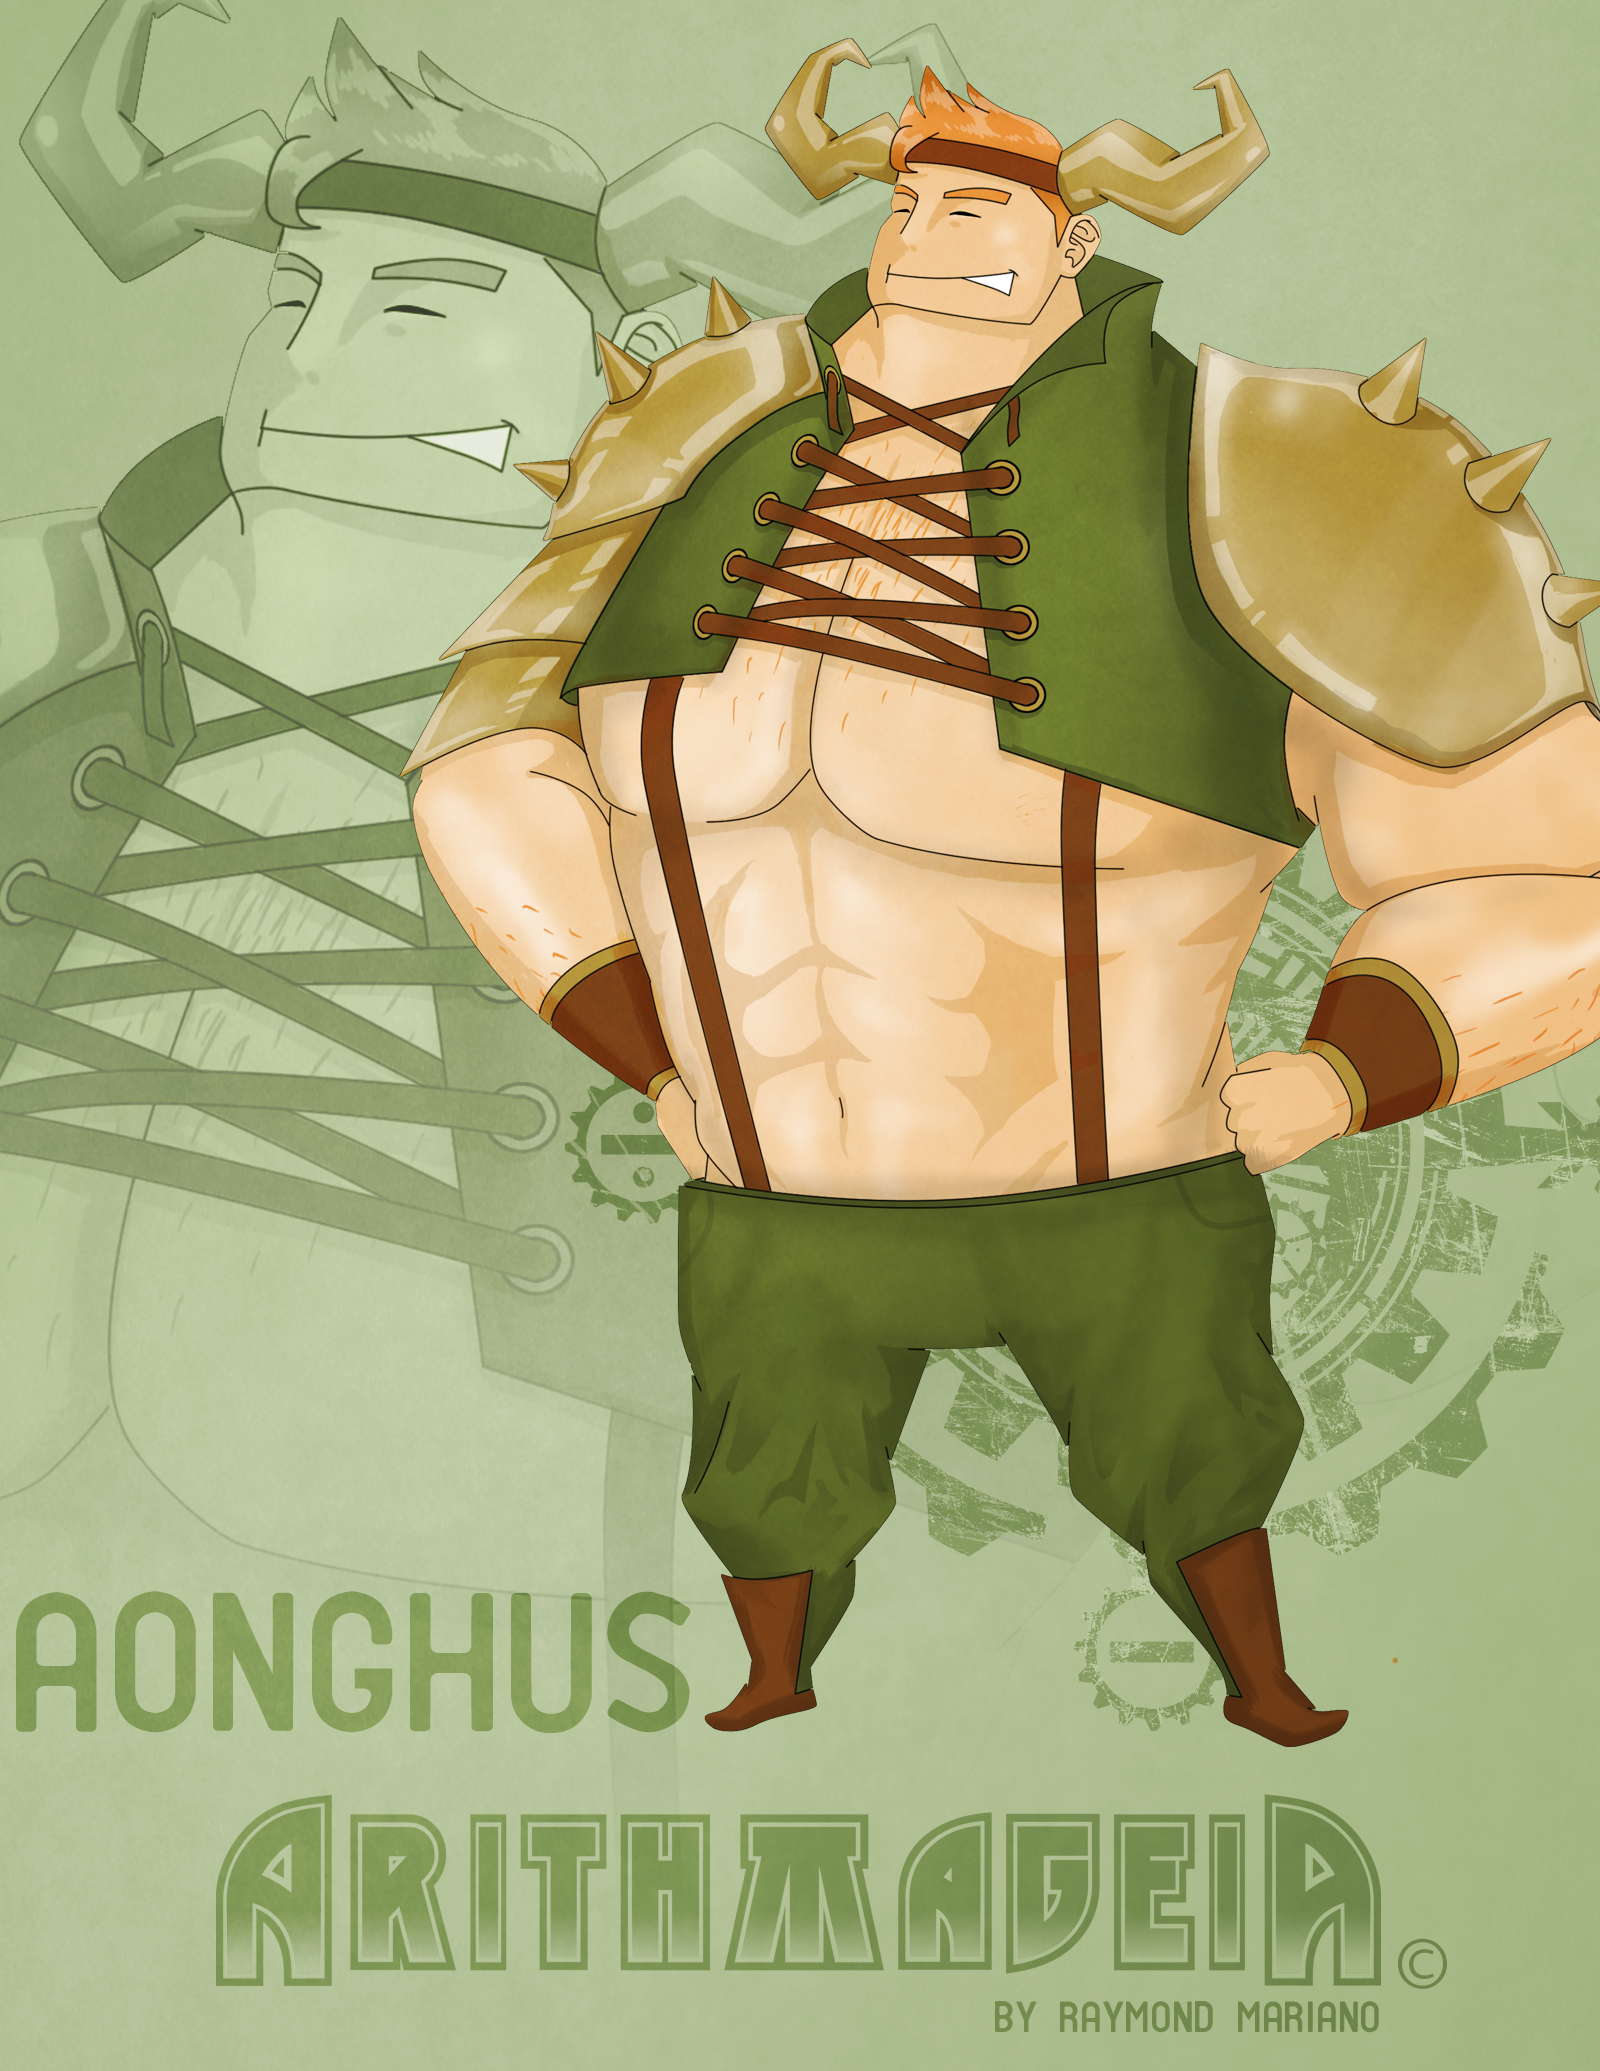 ROLE_PRESENT_AONGHUS_1.png